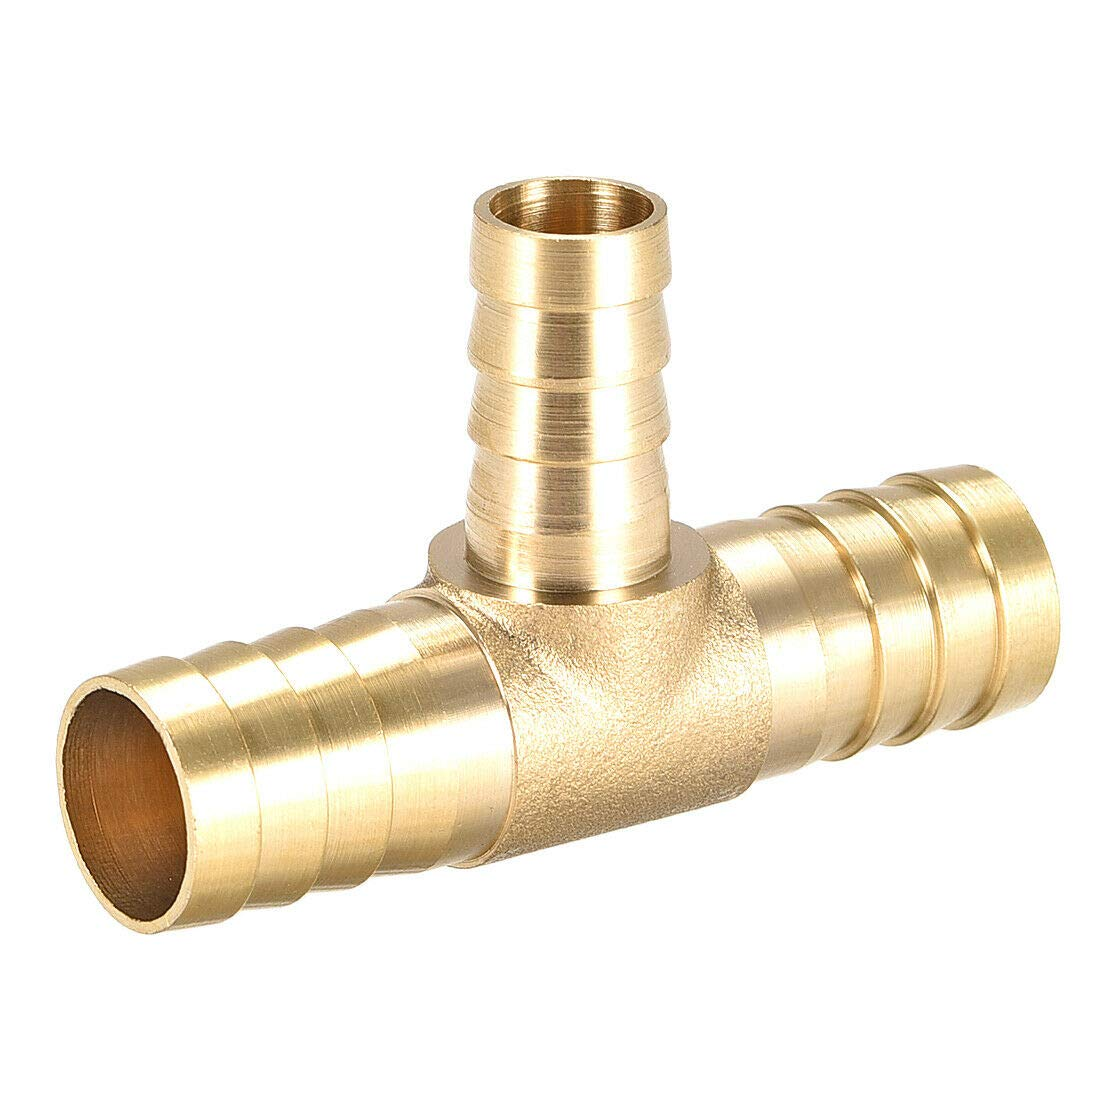 Pipe Fittings 16mm x 12mm x 16mm Brass Hose Reducer Barb Fitting Tee T-Shaped 3 Way Barbed